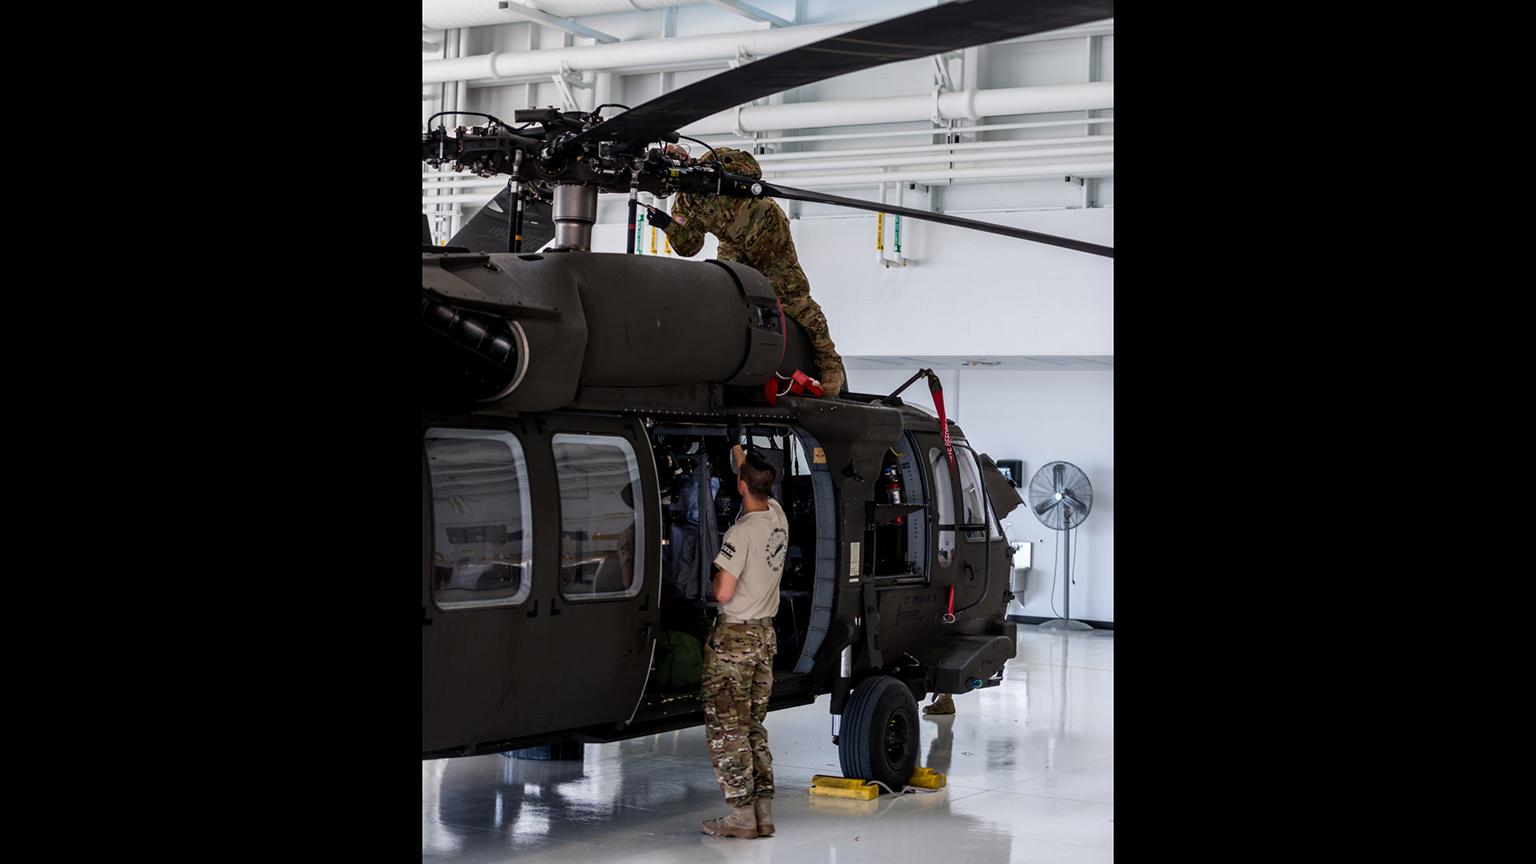 Illinois National Guard soldiers prepare a UH-60 Blackhawk to depart Kankakee in support of Hurricane Florence relief efforts. (Sgt. Stephen Gifford / Illinois National Guard)